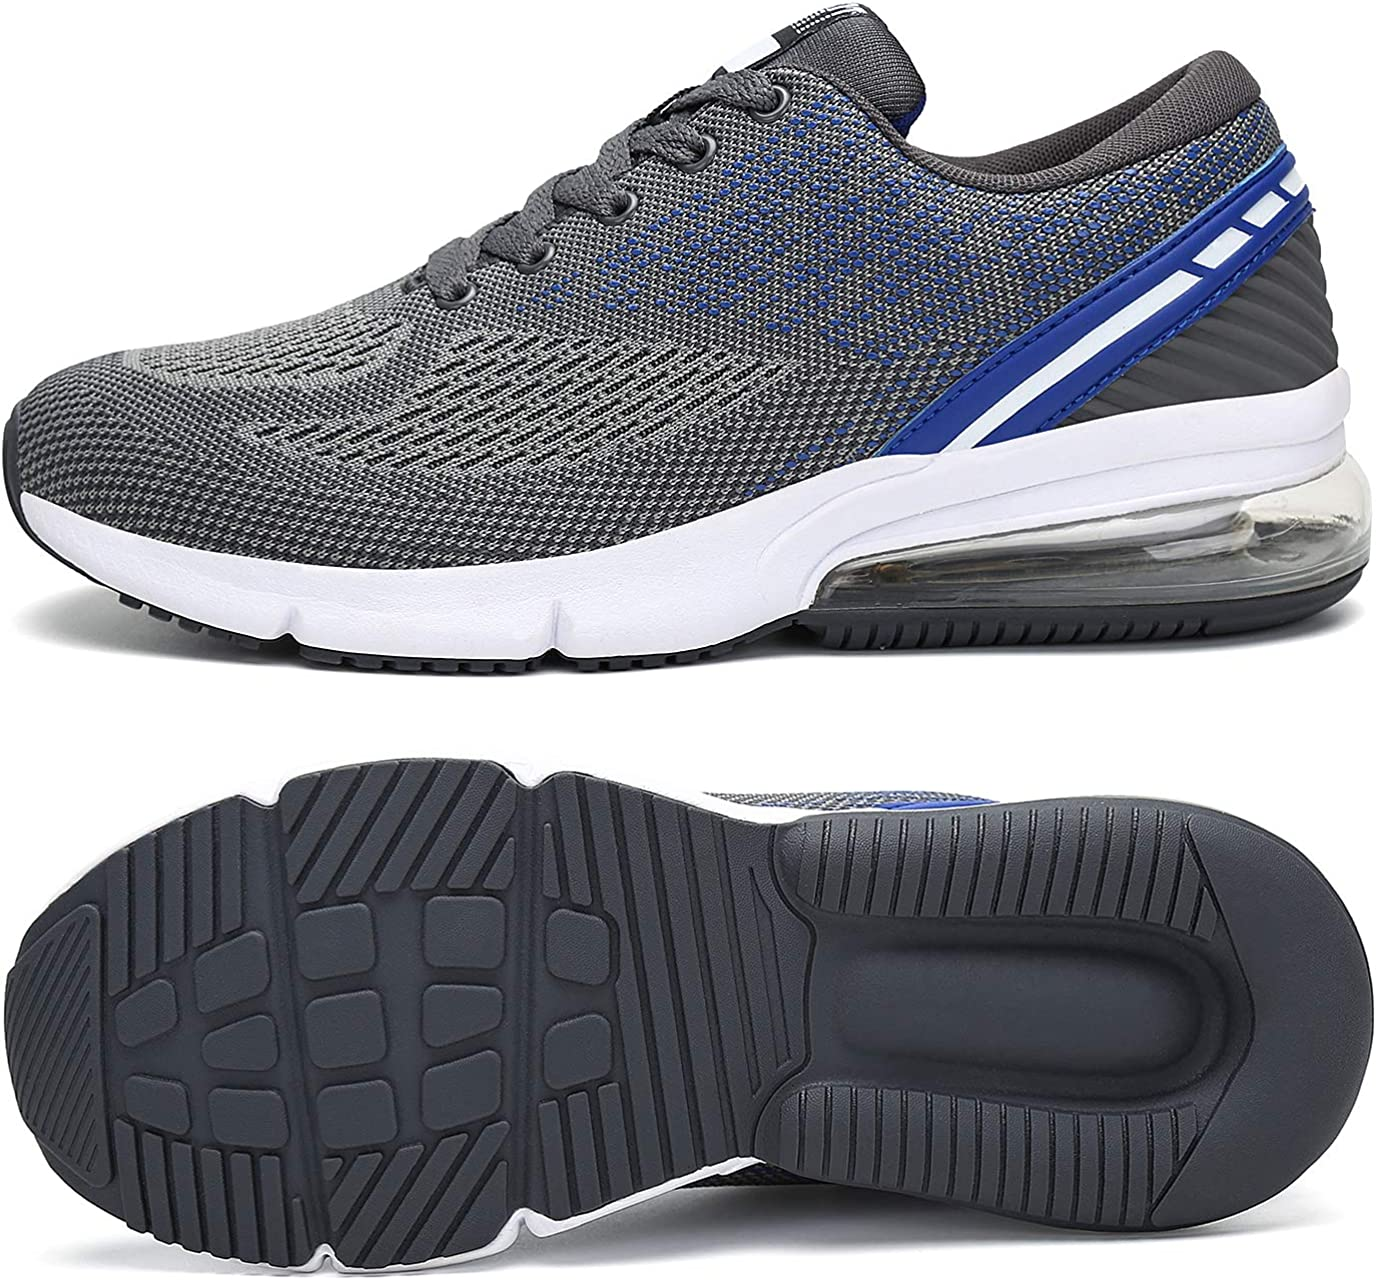 APTESOL Running Shoes Men Light Weight Sport Sneakers with Air Cushion for Men's Cross-Training Road Running